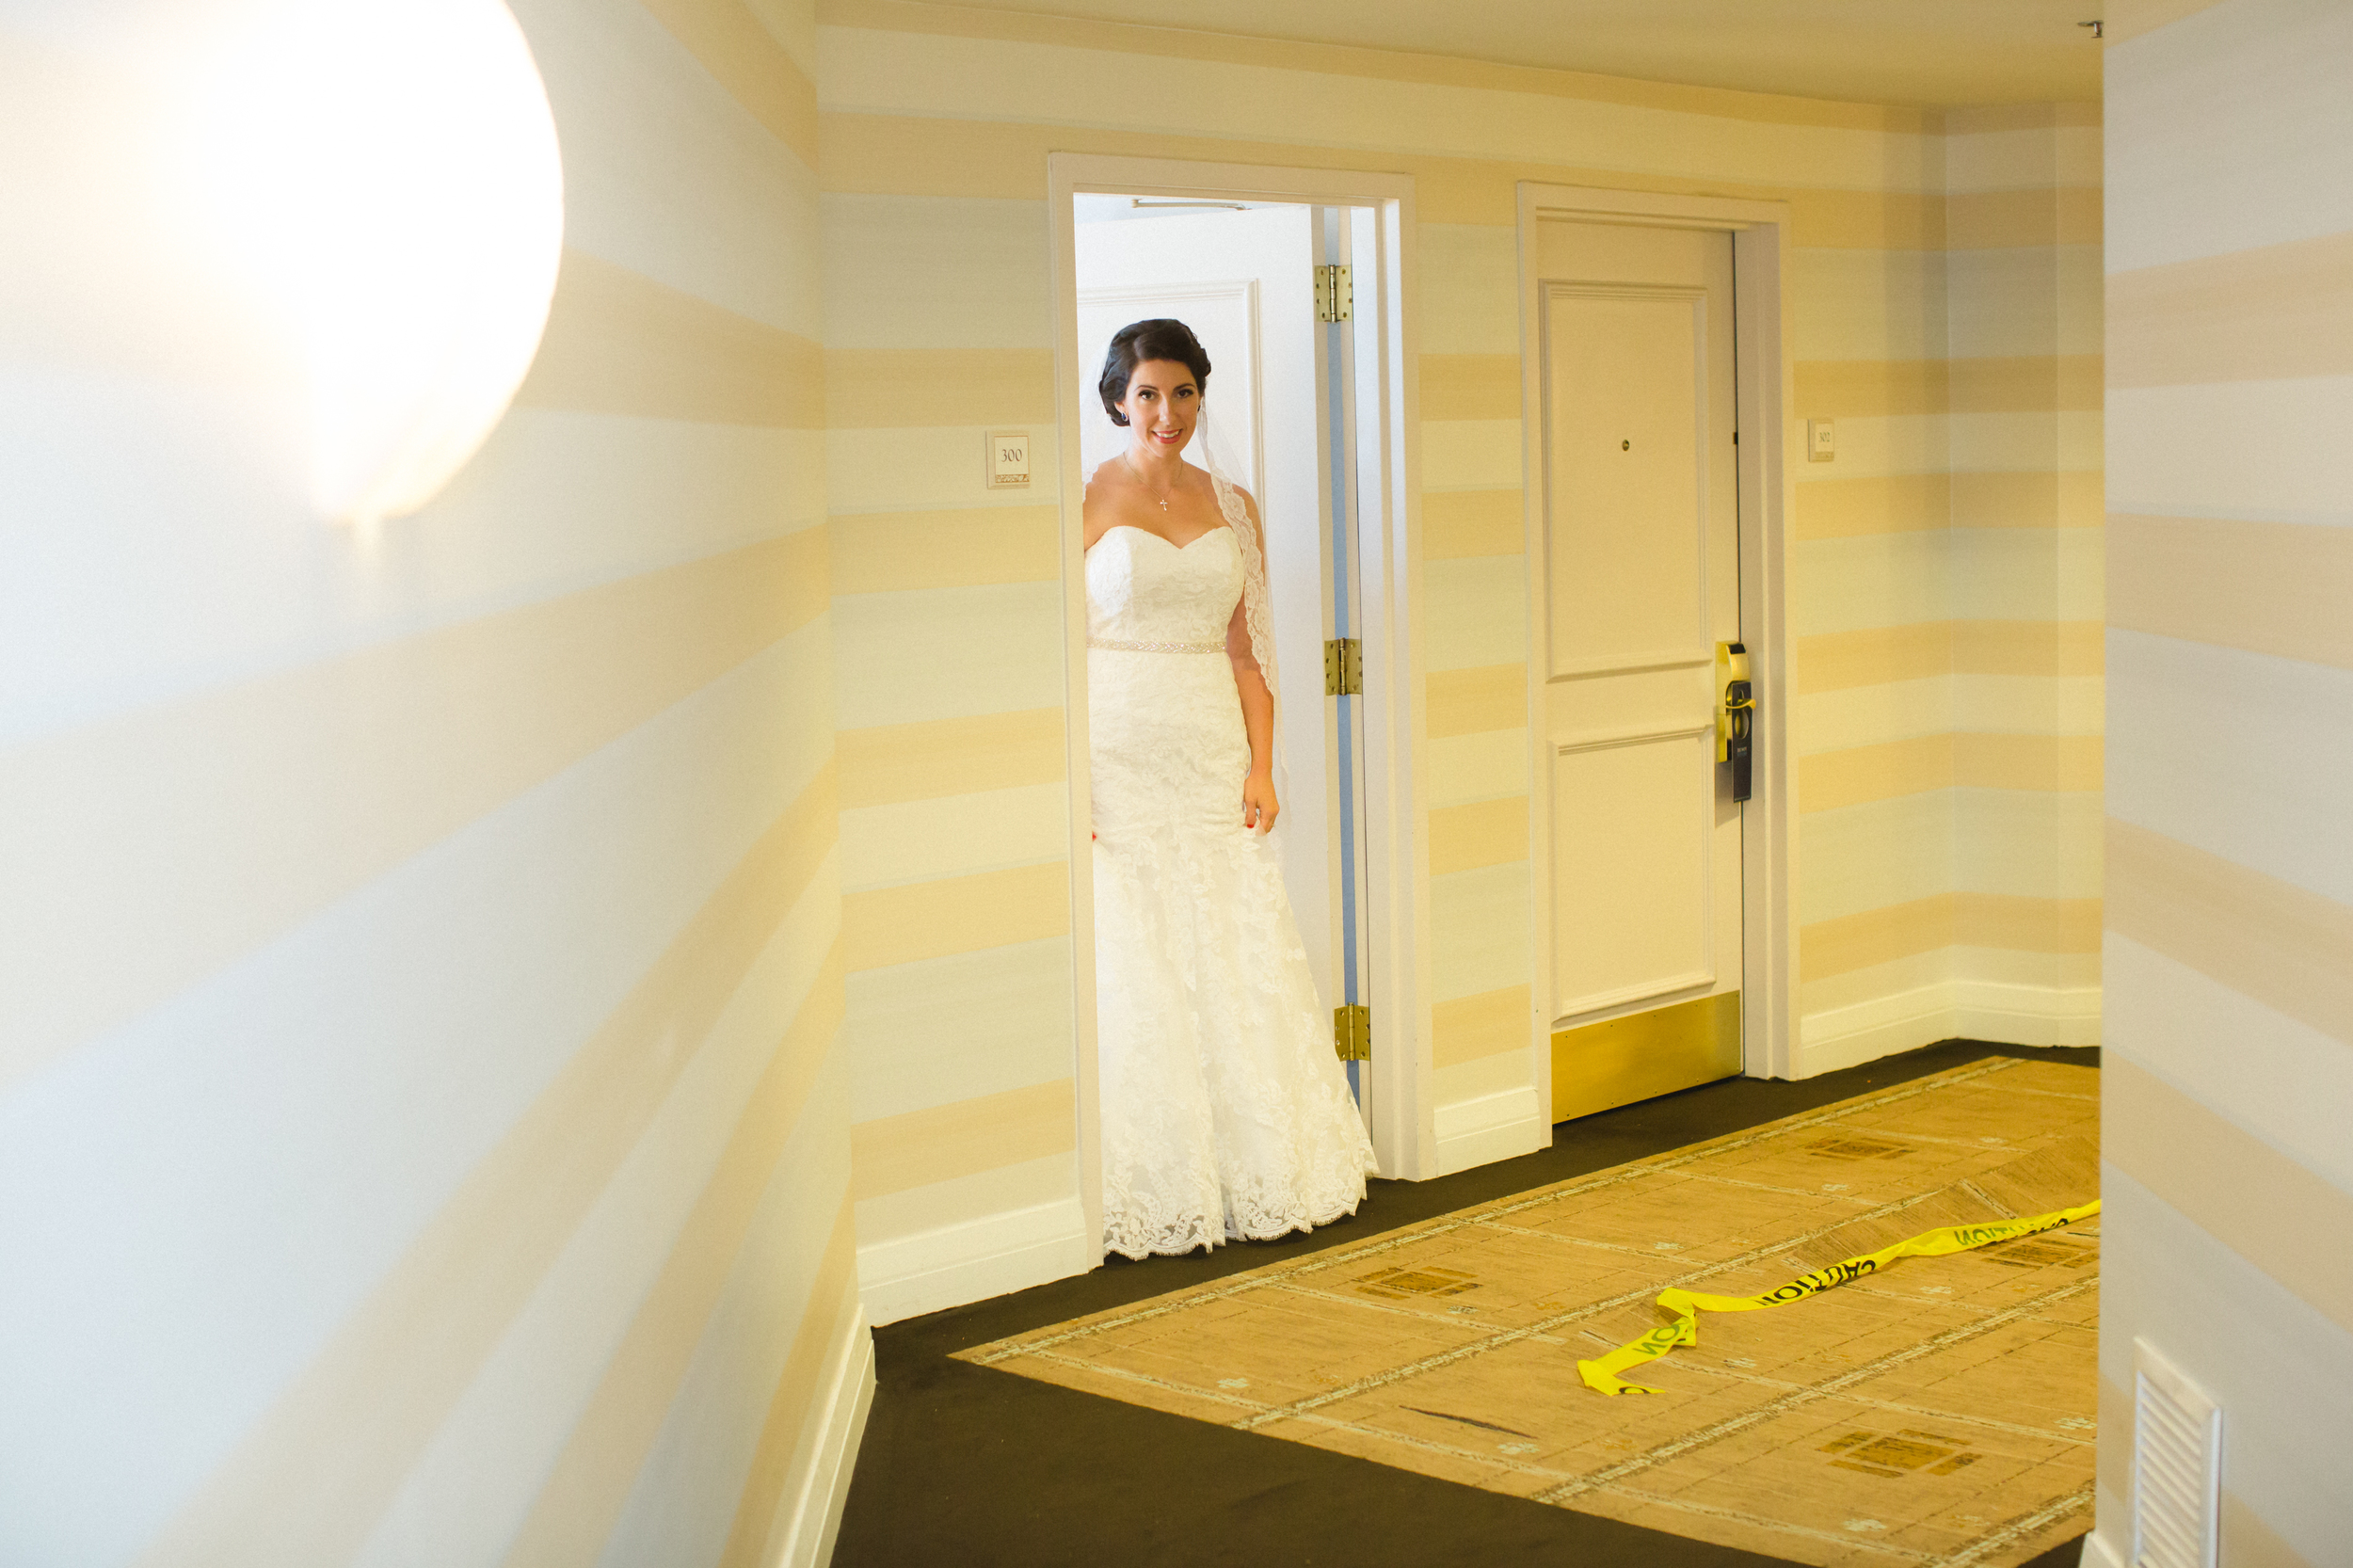 Vness_Photography_Wedding_Photographer_Washington-DC_Fish_Wedding-184.JPG